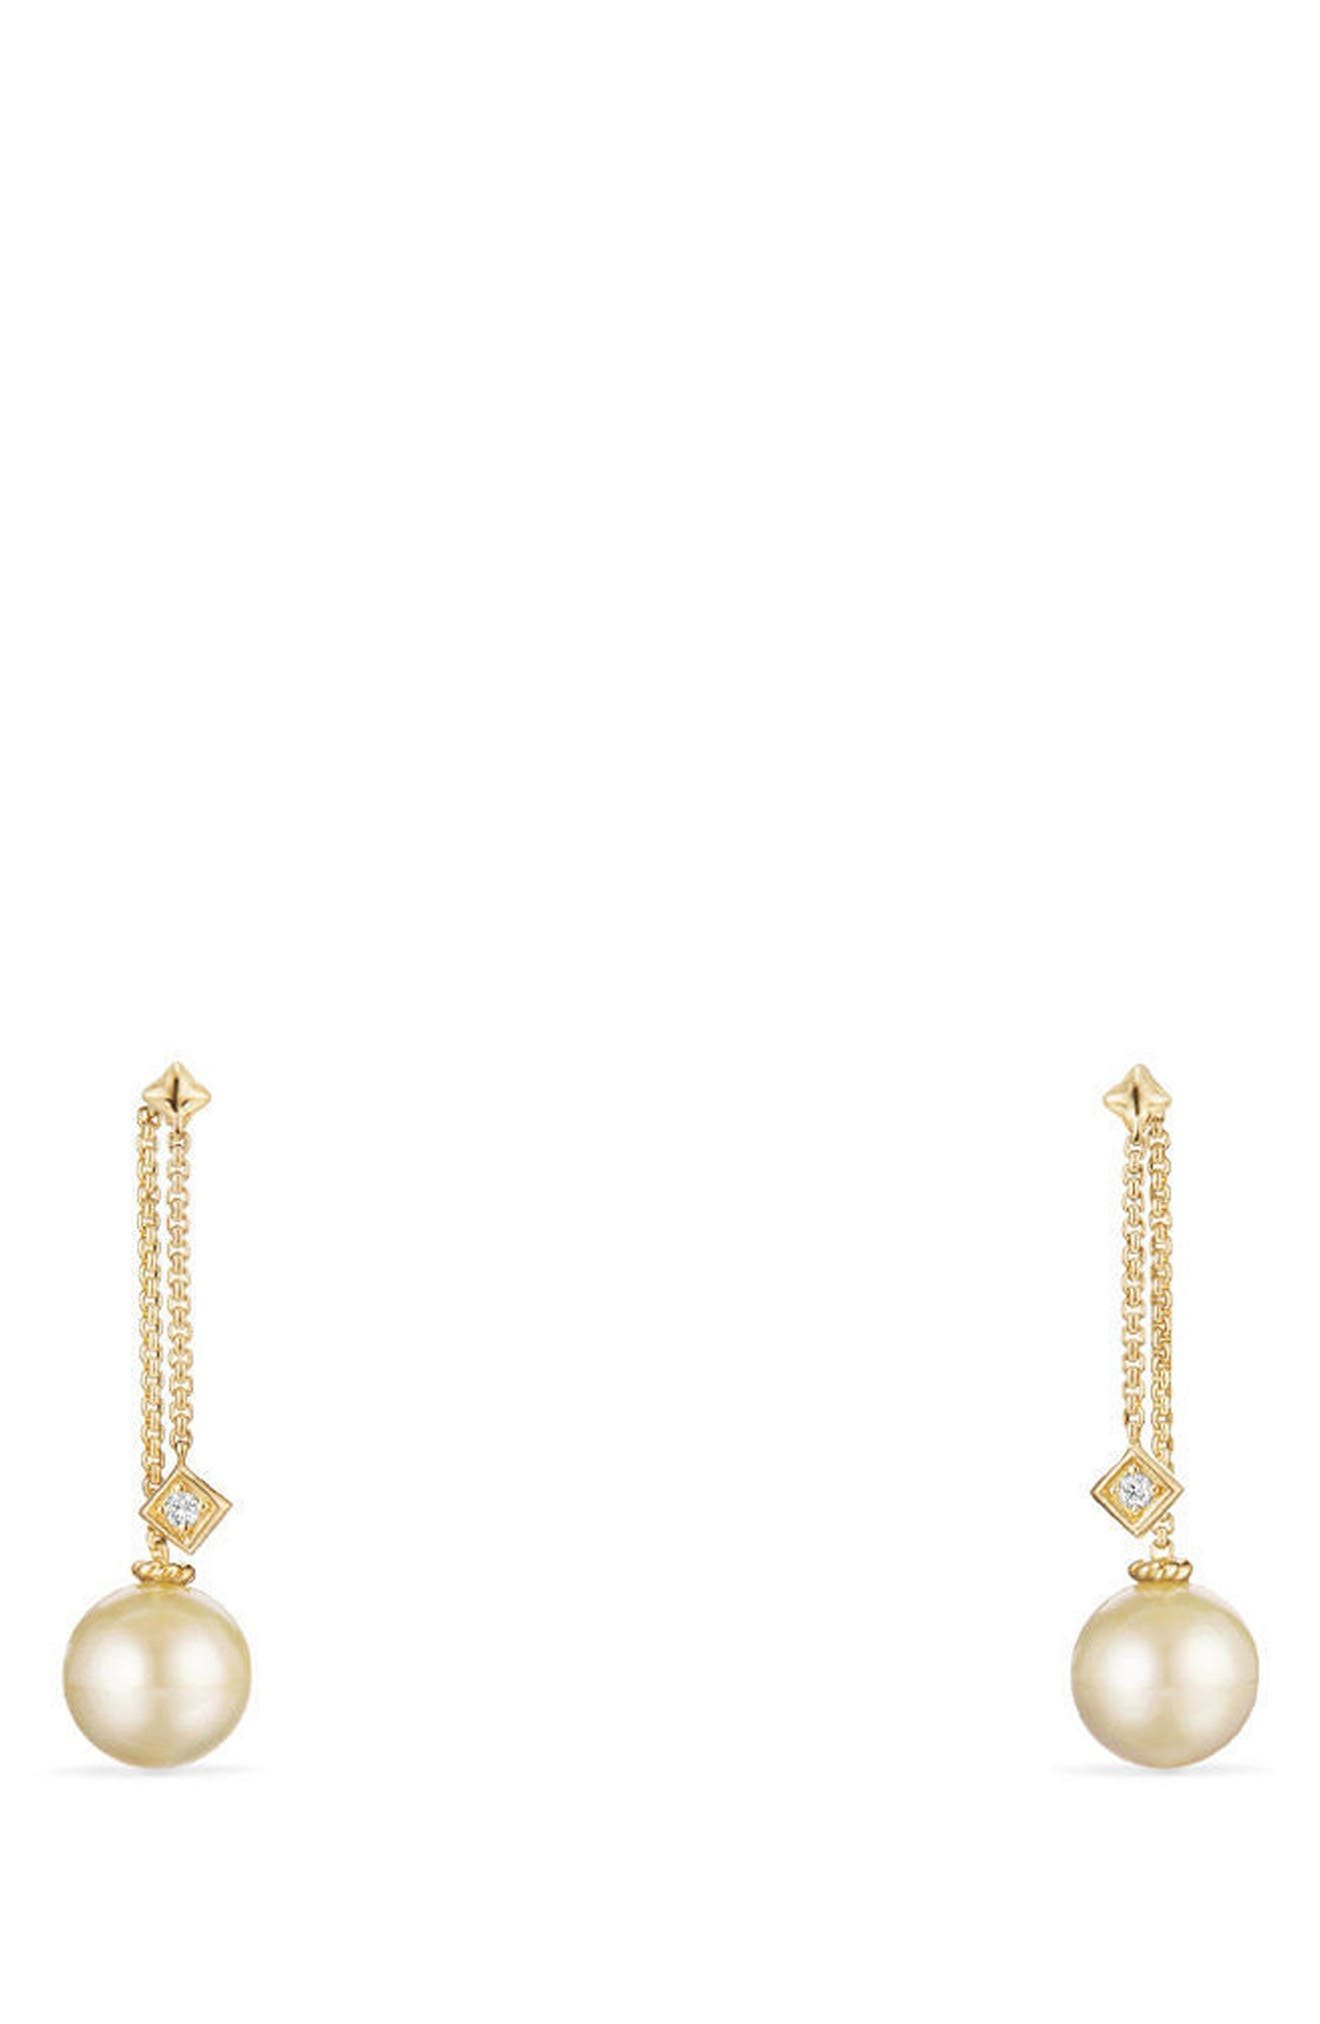 Solari Earrings with Diamonds in 18K Gold,                             Main thumbnail 1, color,                             YELLOW GOLD/ SOUTH SEA YELLOW